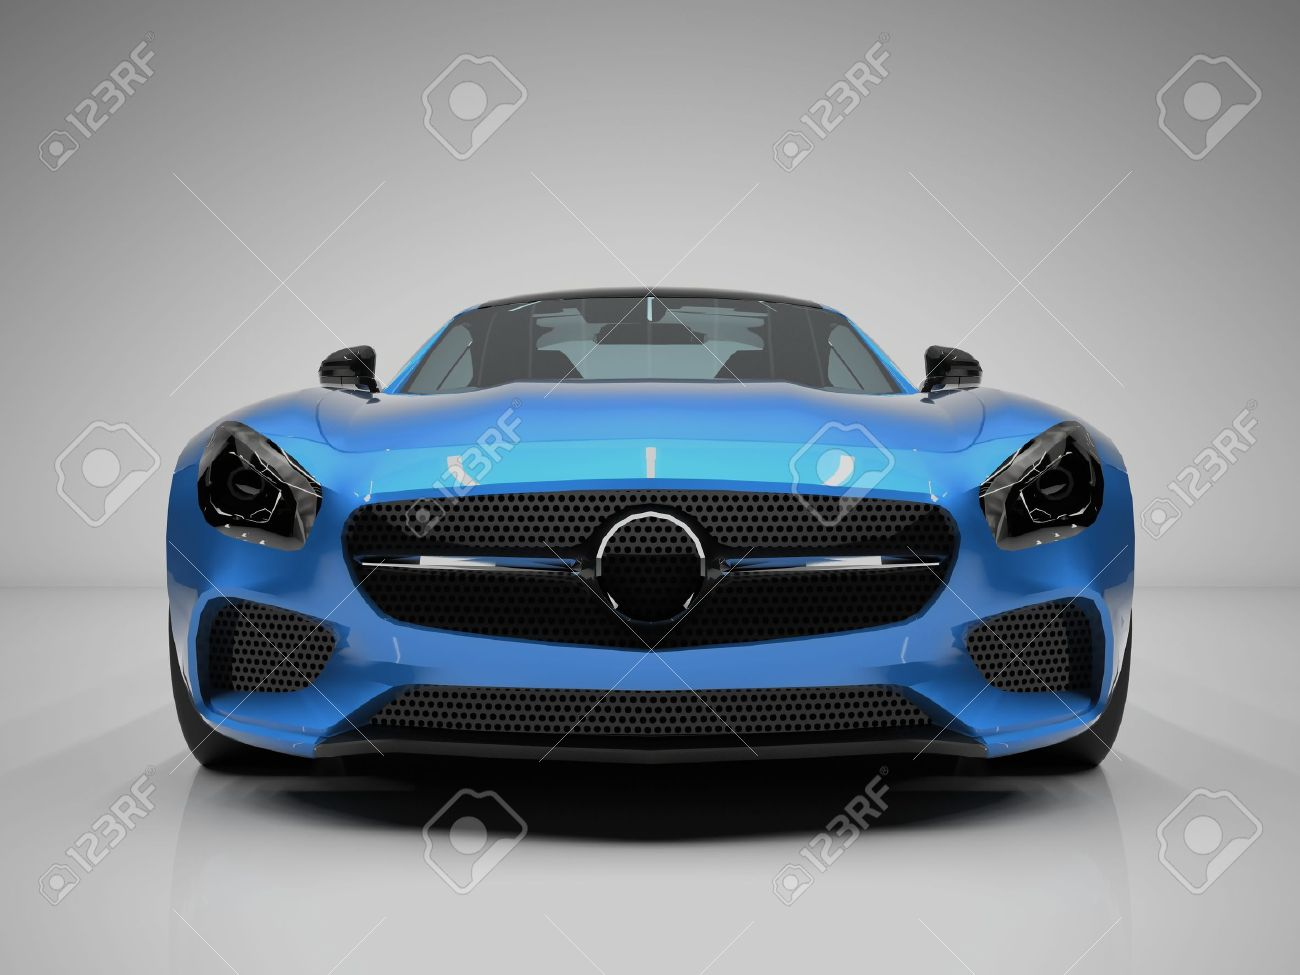 Sports Car Front View The Image Of A Sports Blue Car On A White